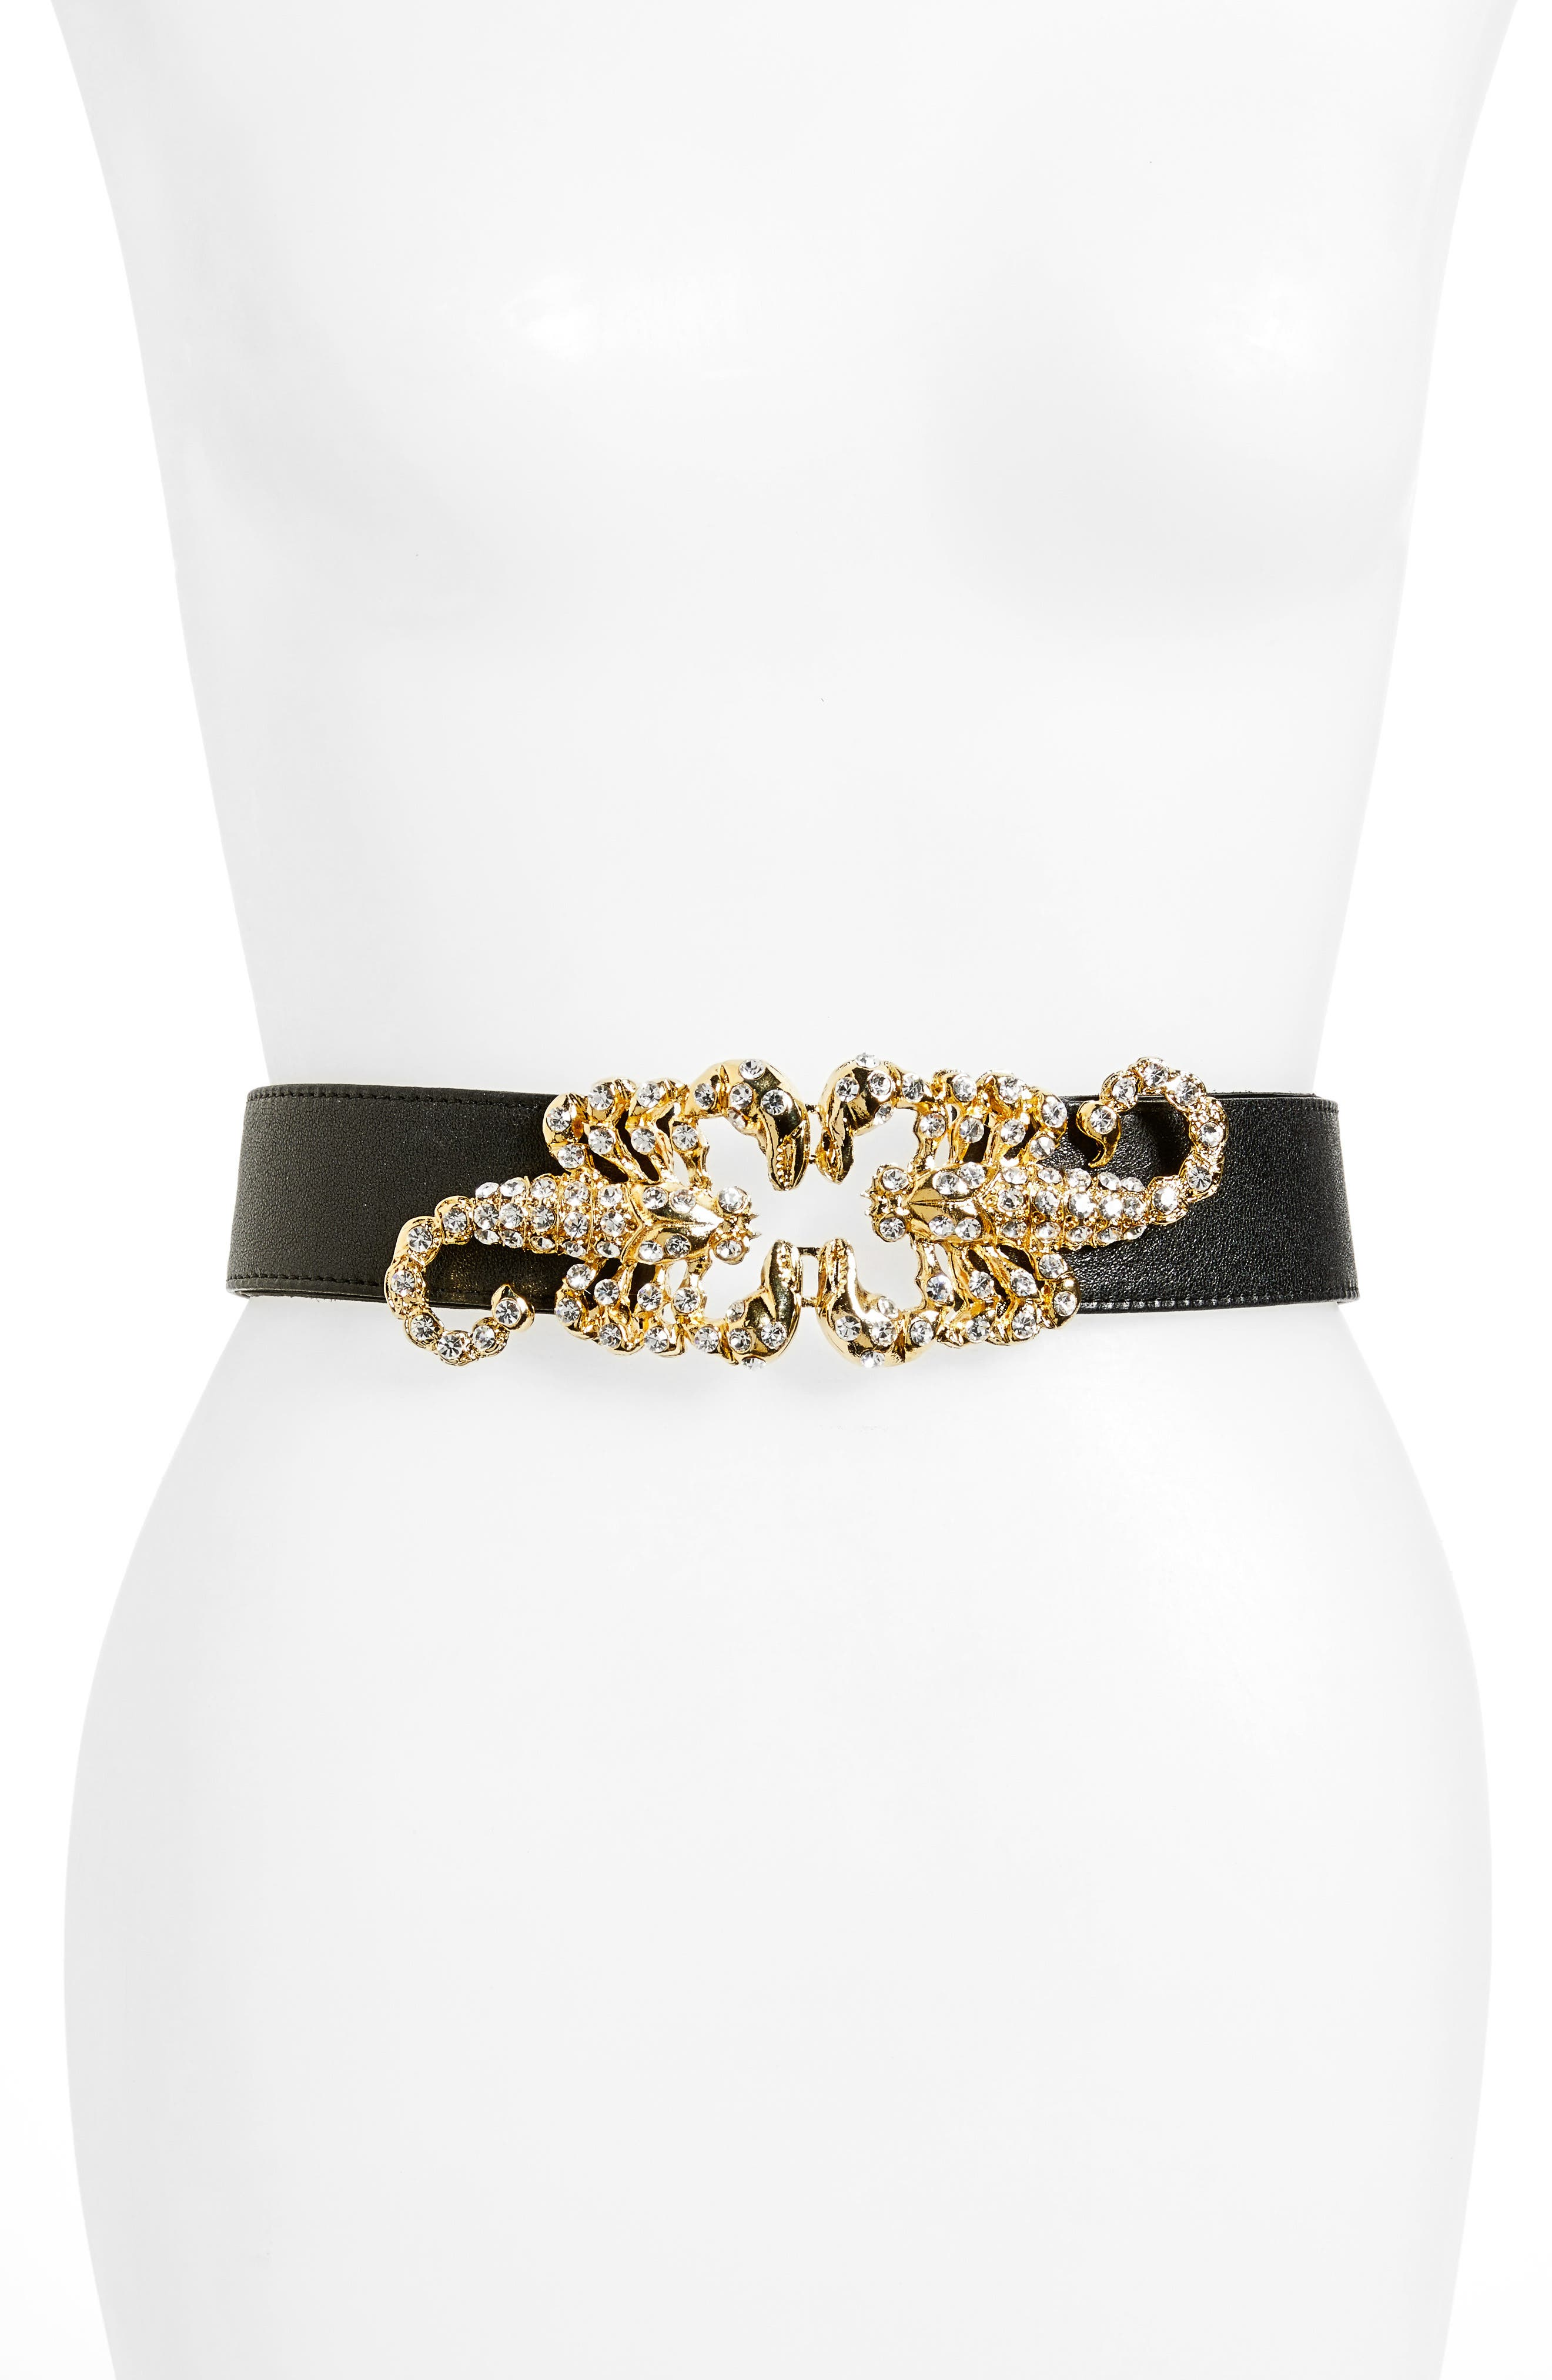 Raina Queen Scorpion Leather Belt, Size One Size - Black/ White Crystal